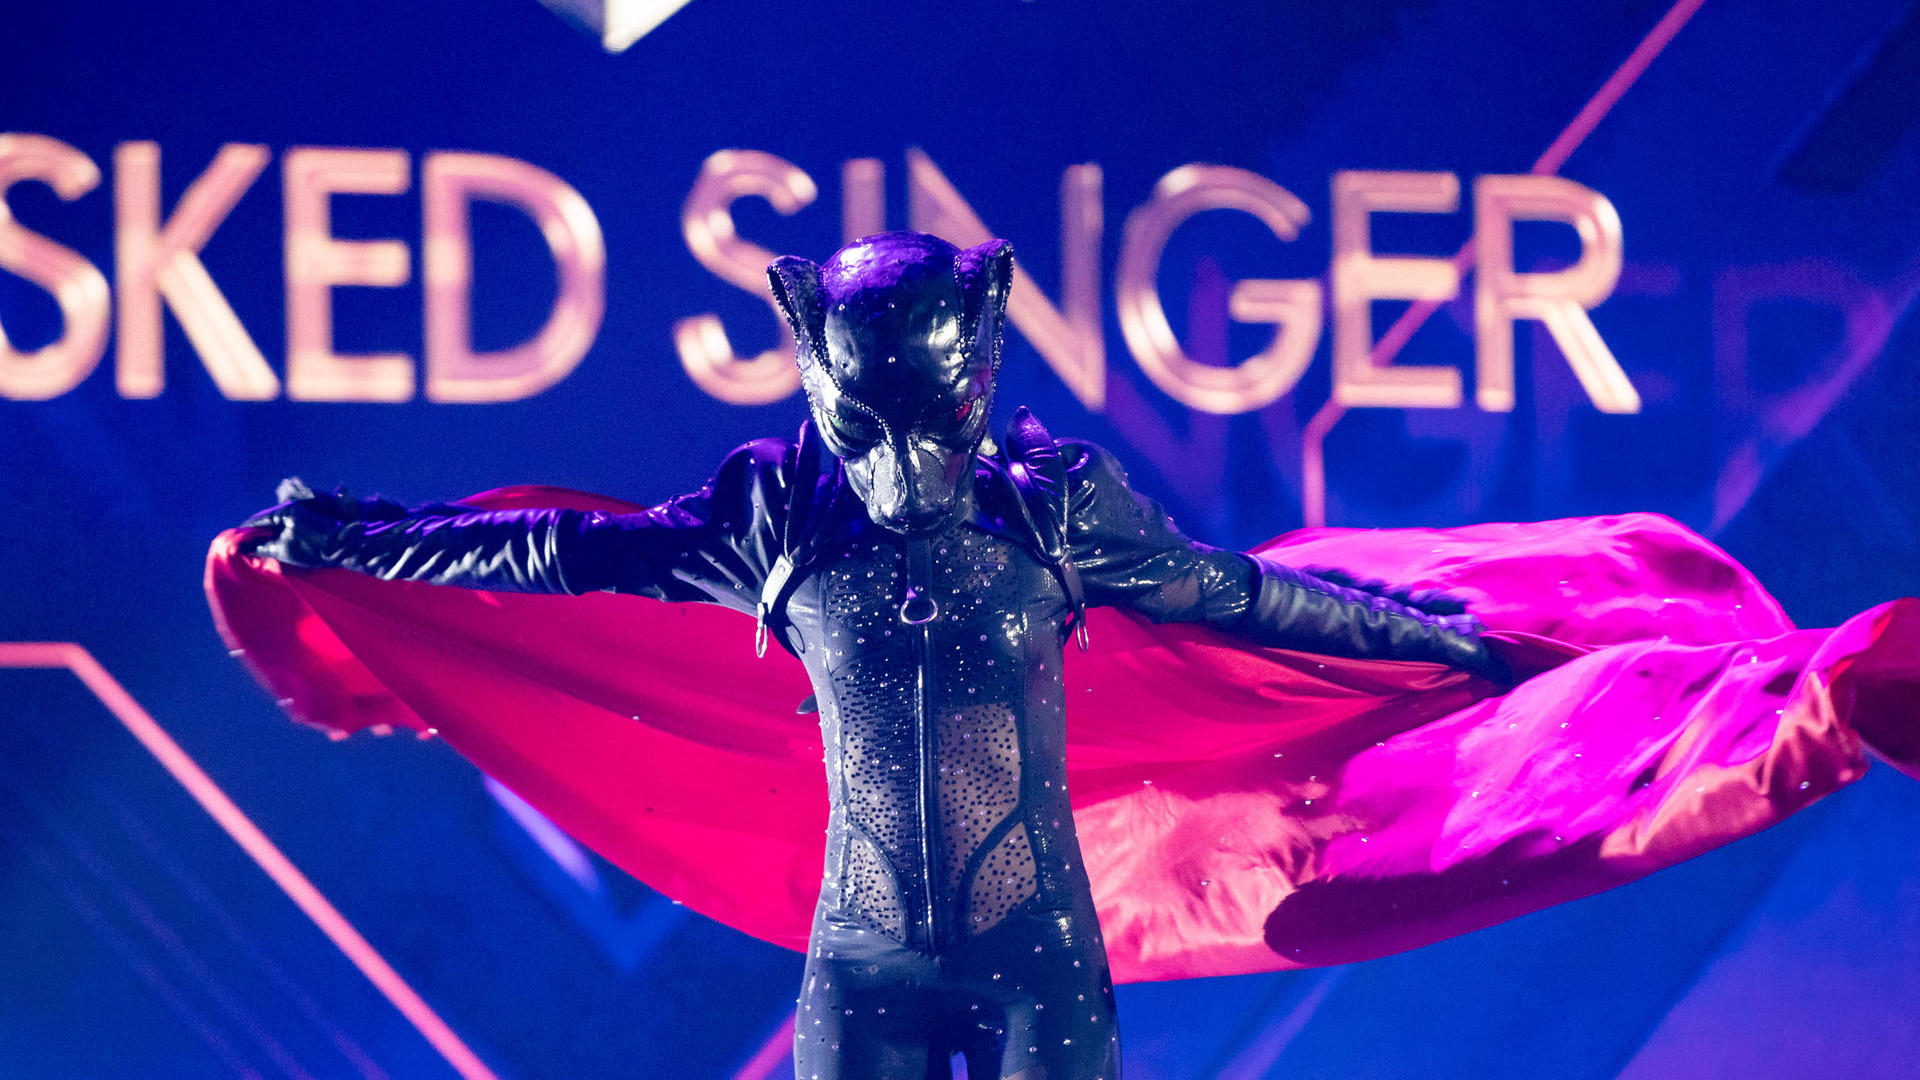 The Masked Singer Panther